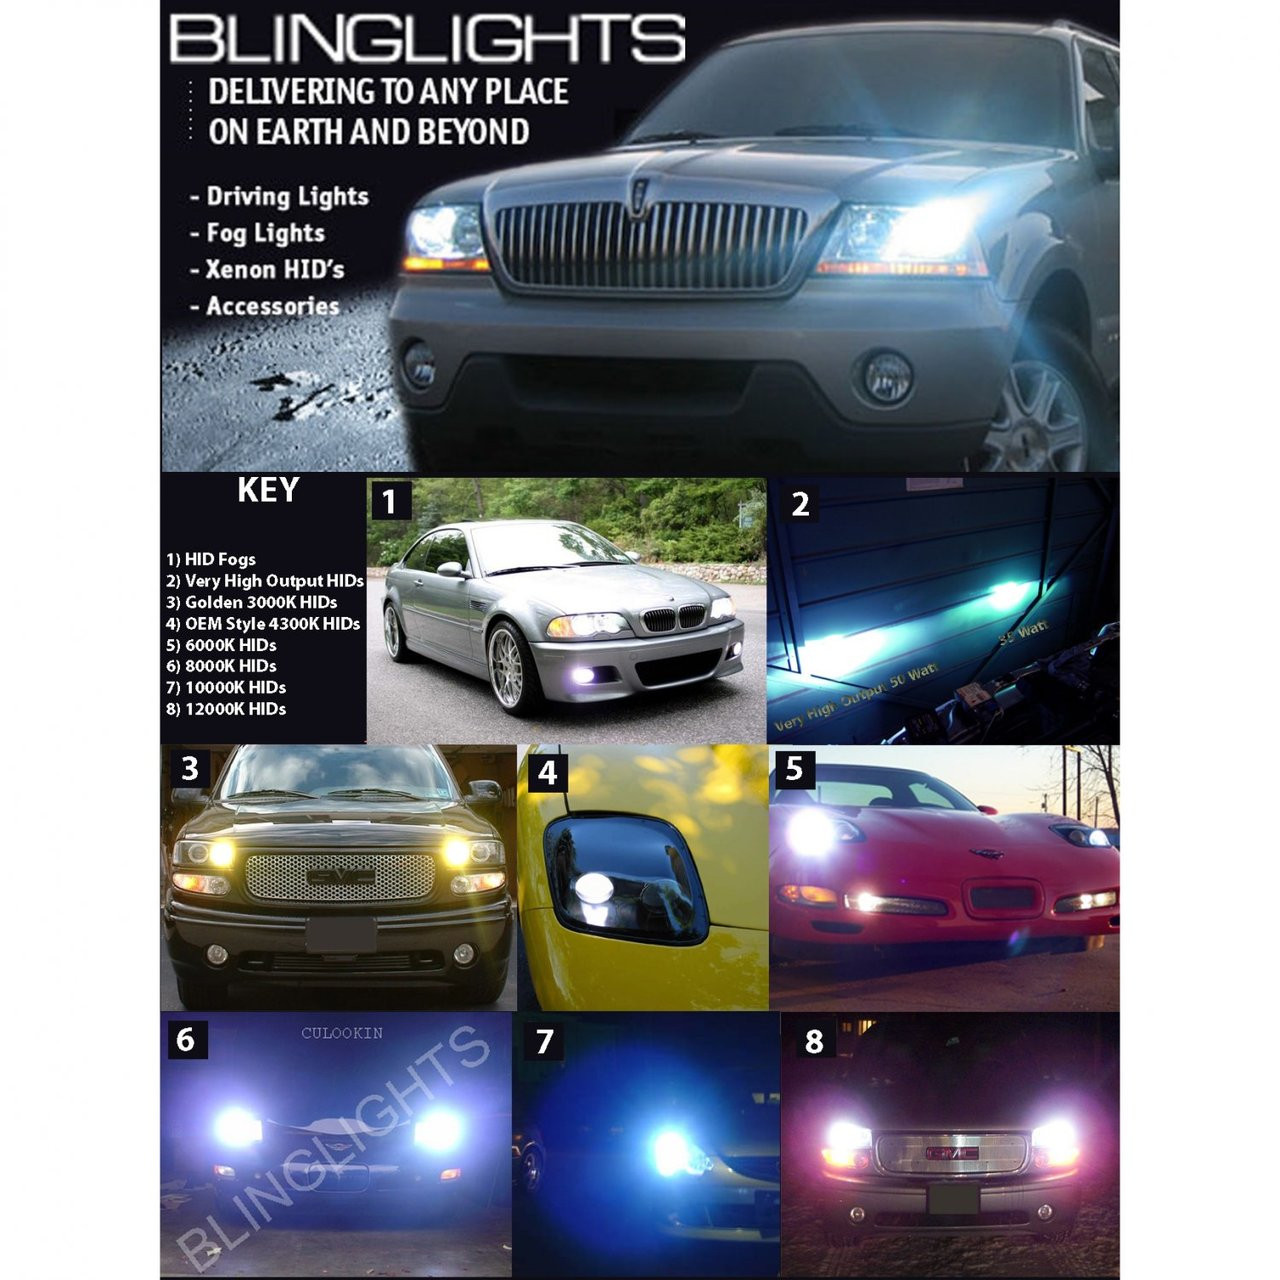 1994 1995 1996 1997 1998 1999 cadillac deville xenon hid conversion kit for headlamps headlights [ 1280 x 1280 Pixel ]